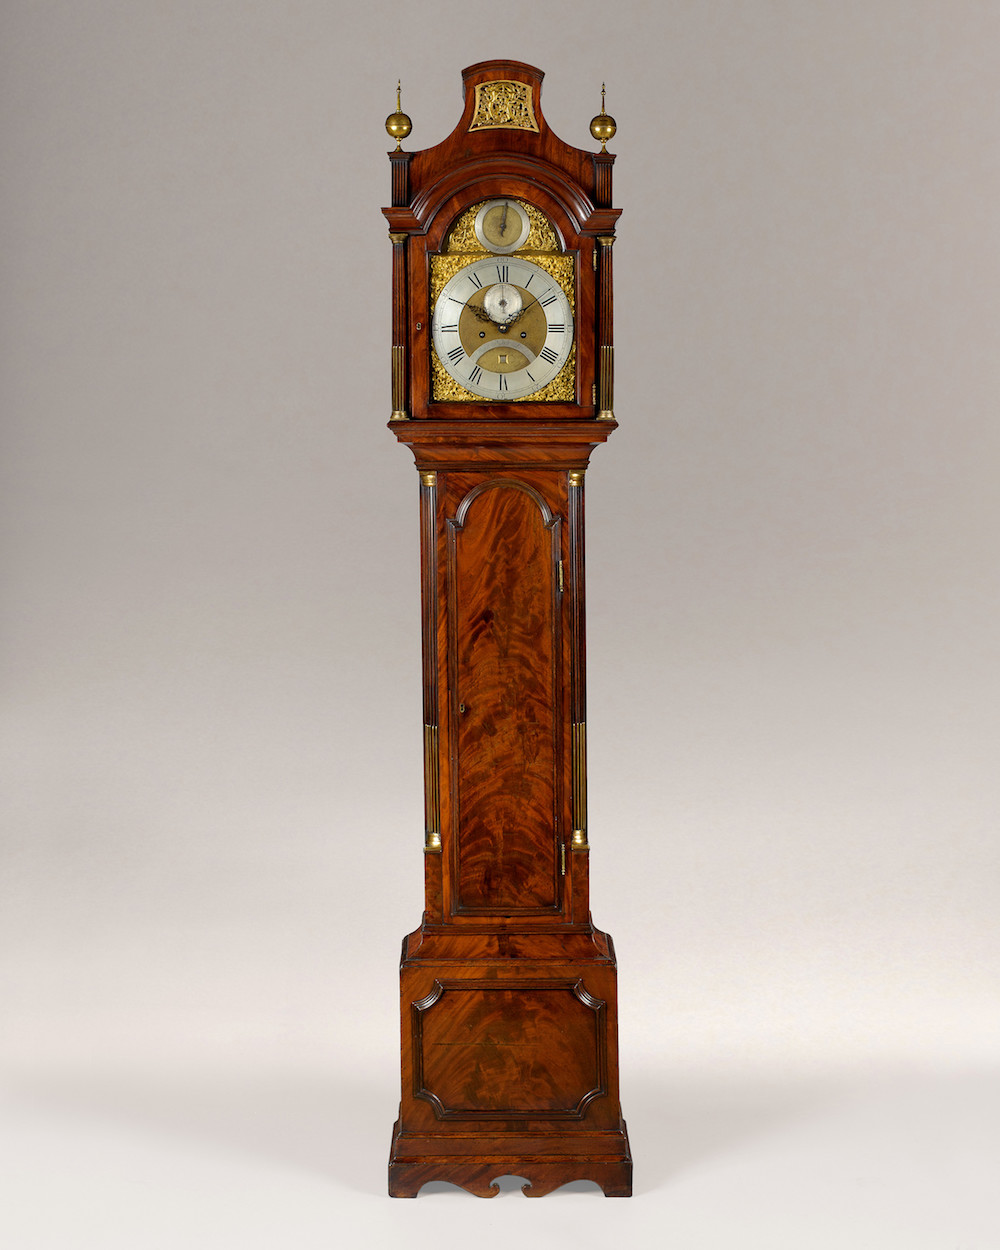 01william-north-a-george-iii-period-8-day-flame-mahogany-longcase-clock.jpg